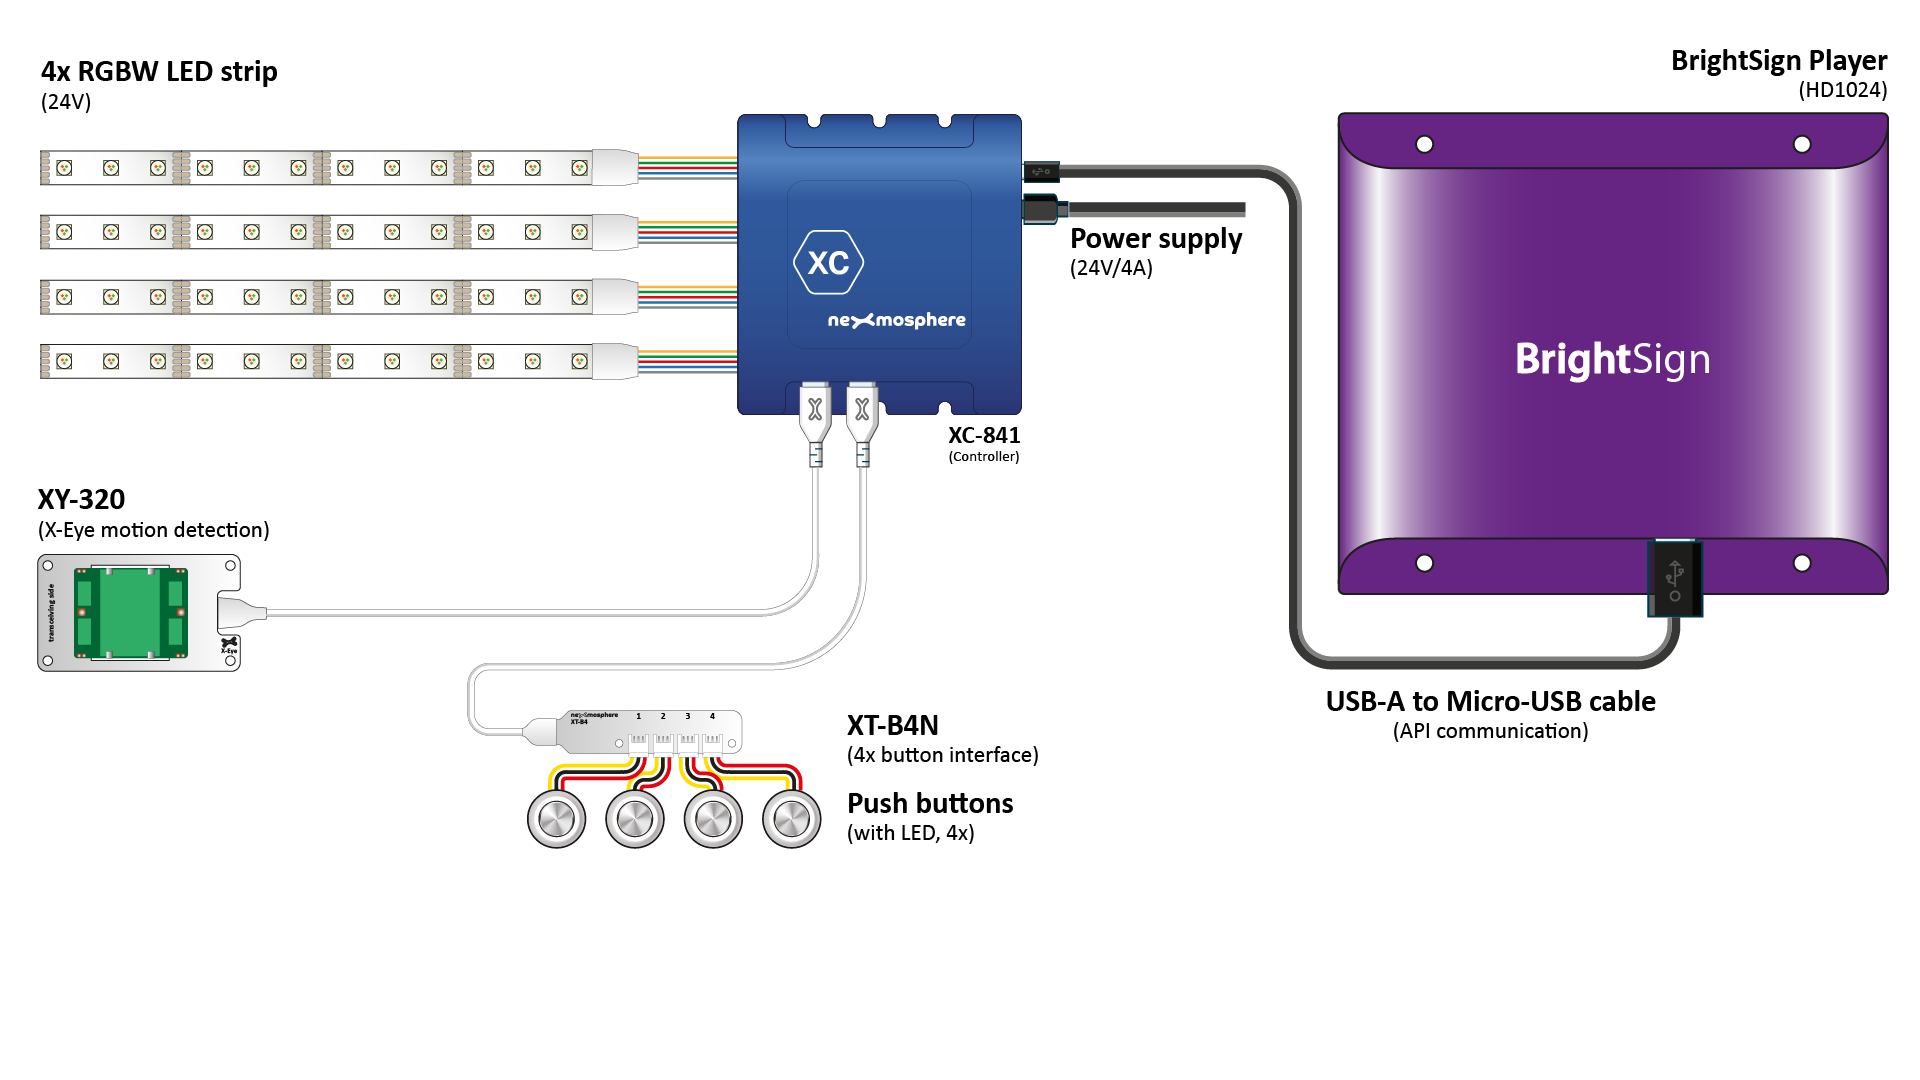 rgbw-led-control-with-xc